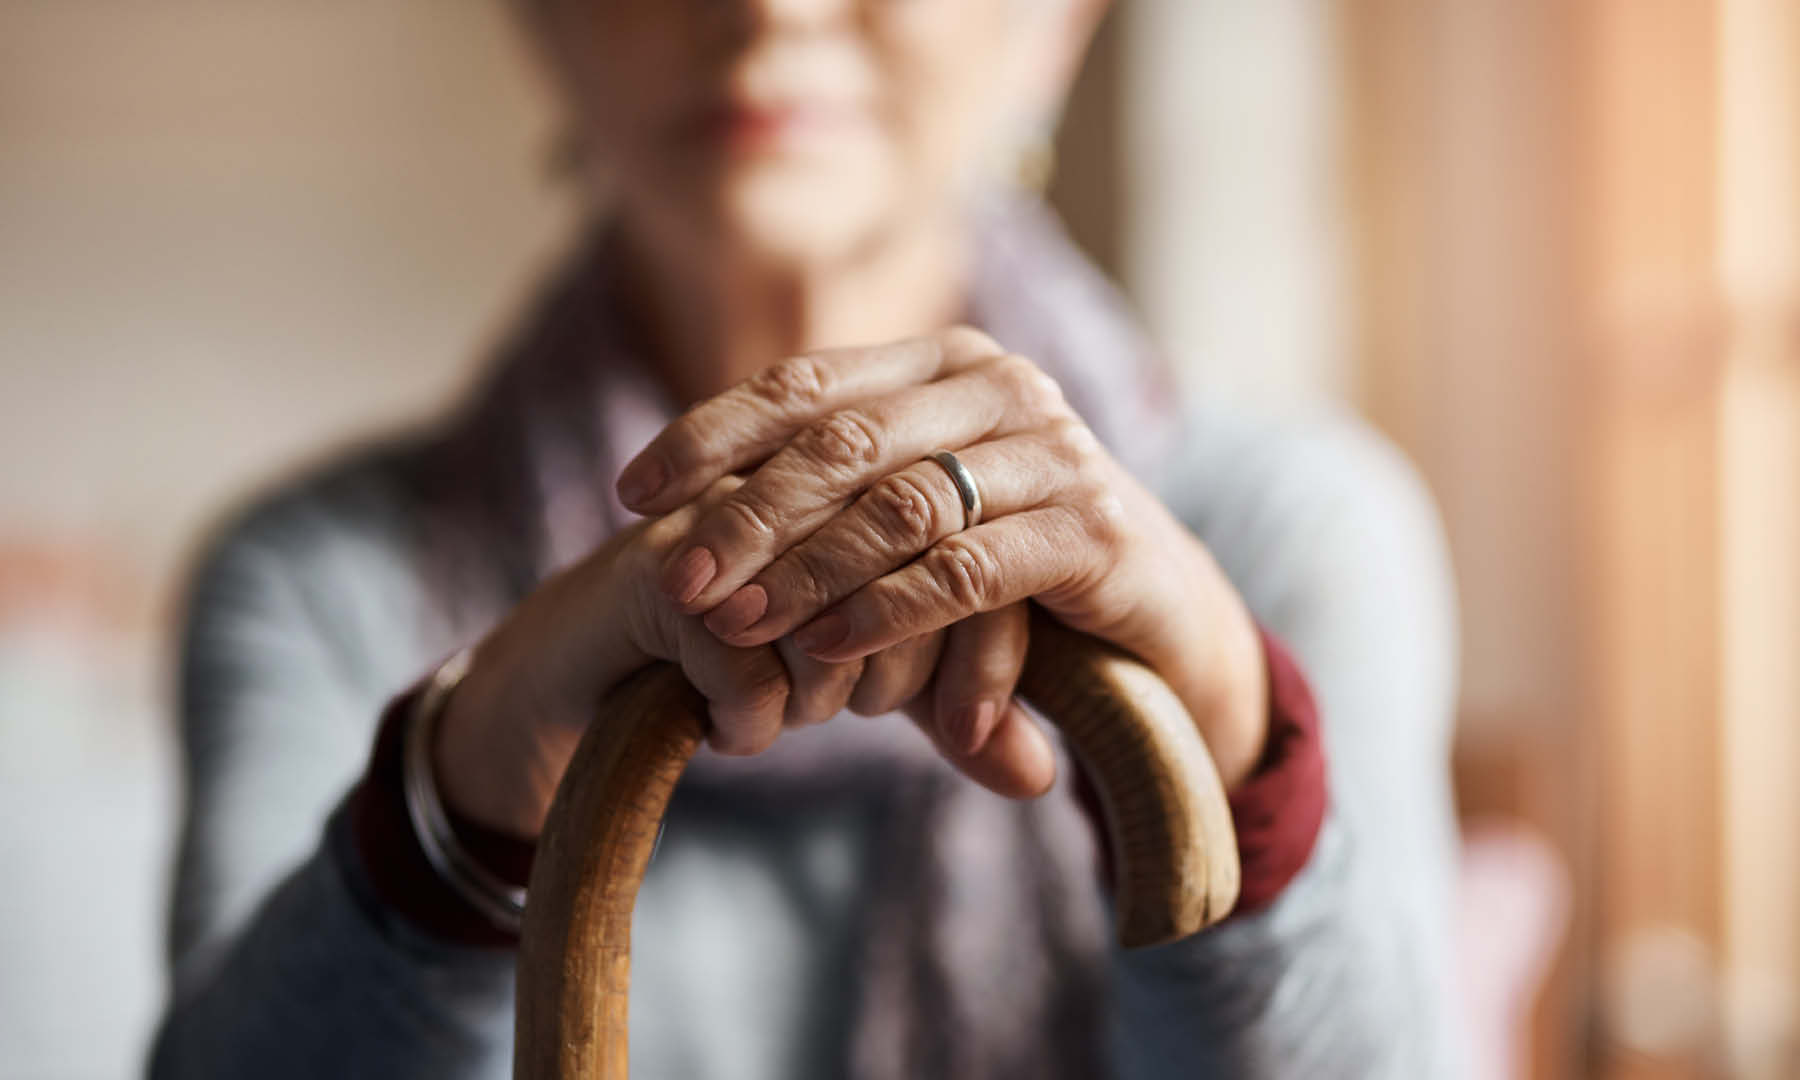 Elderly woman holding a cane